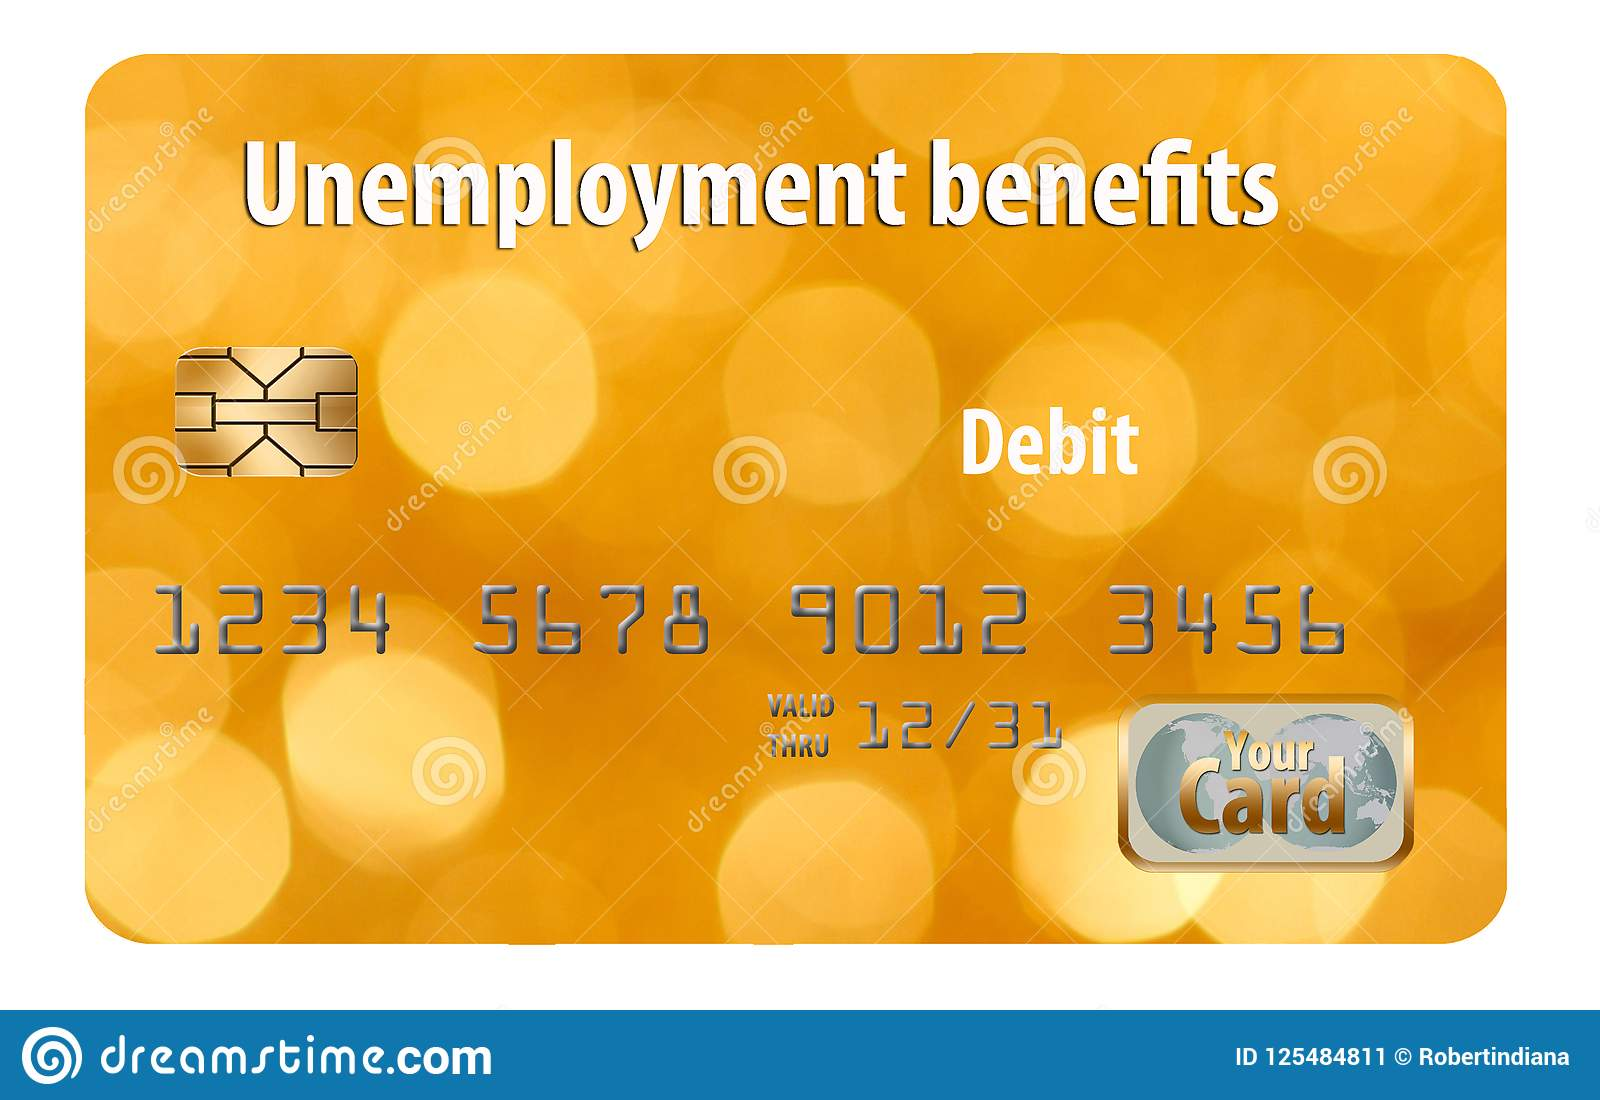 Here is a Generic Unemployment Benefits Debit Card. Stock Image